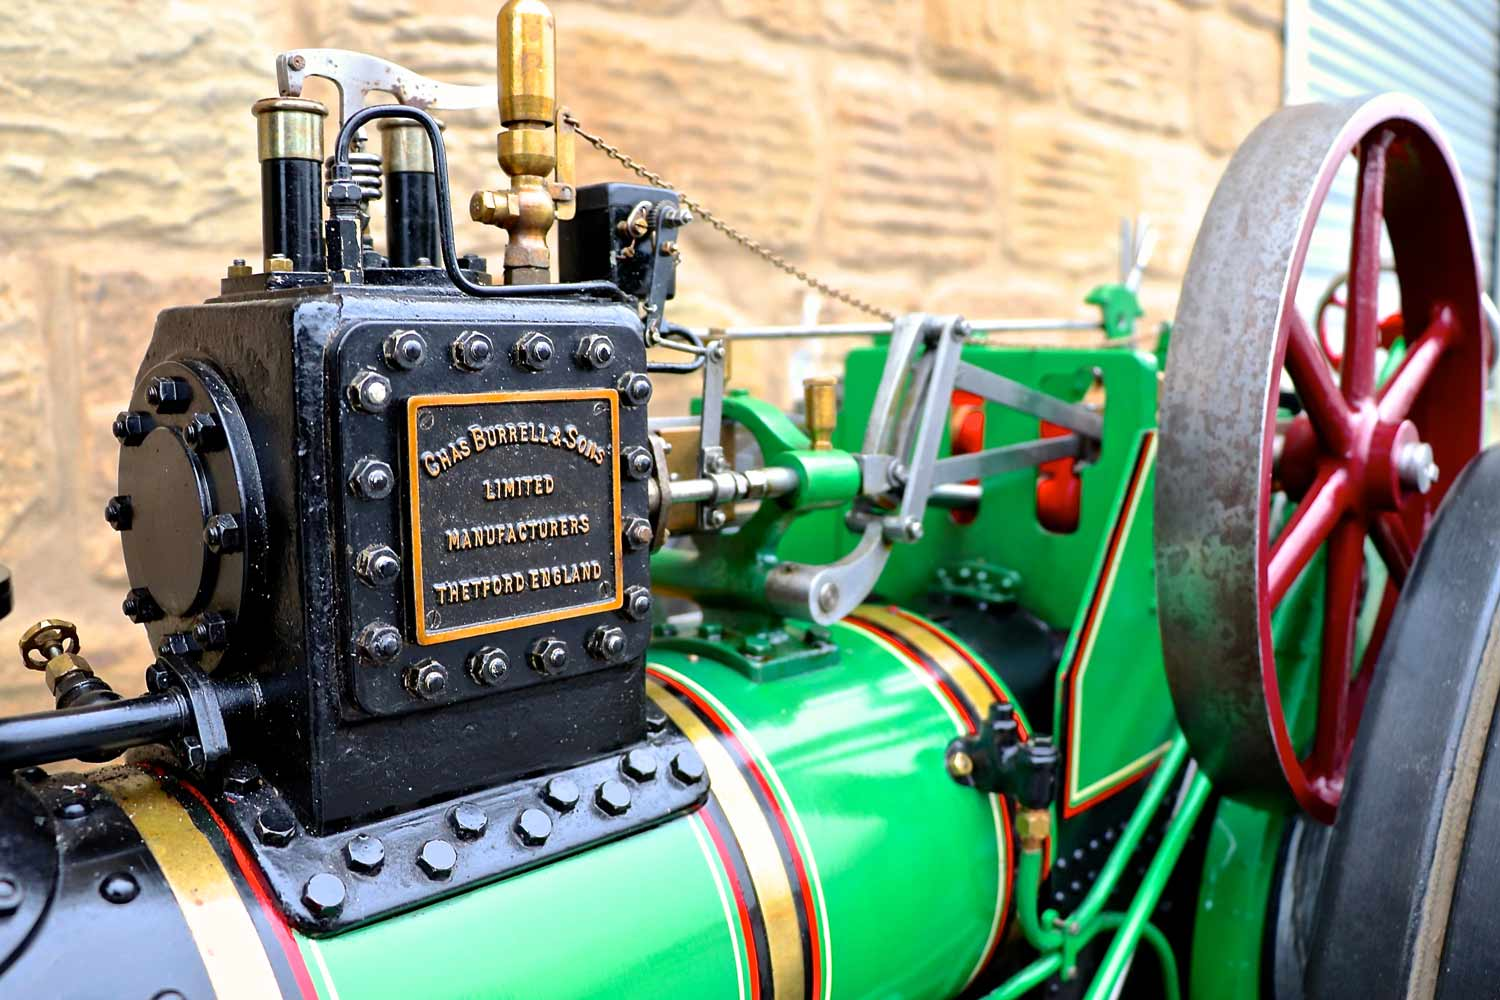 test 3-inch-Burrell-traction-engine-plastow-live-steam-for-sale-8